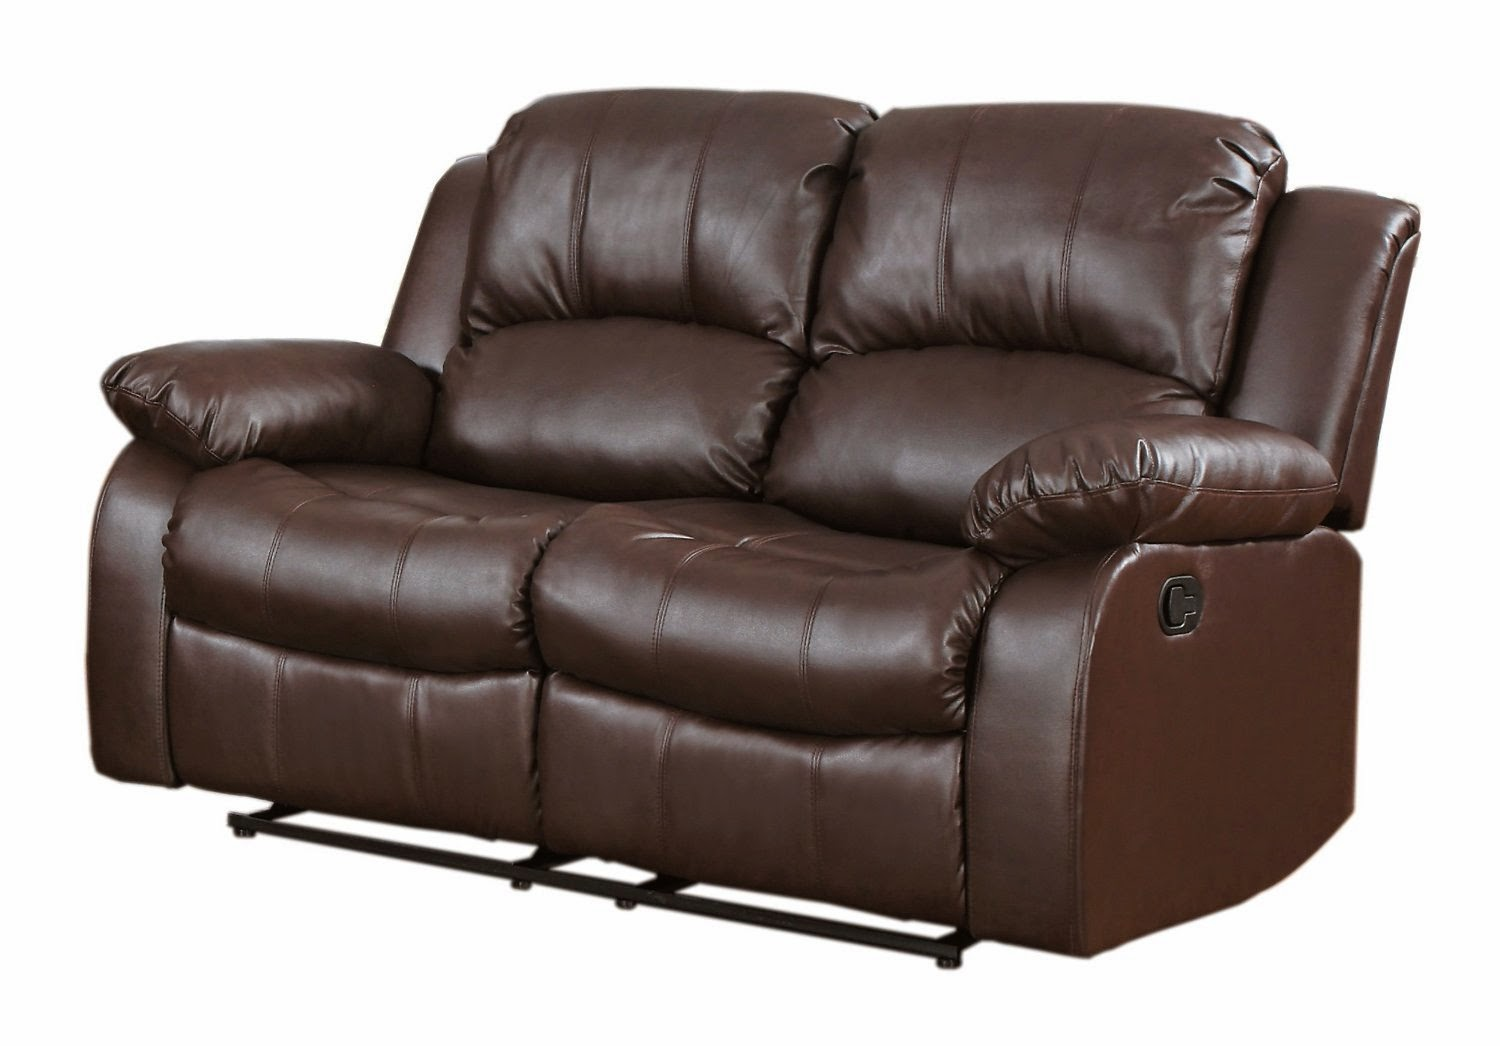 where is the best place to buy recliner sofa 2 seater brown leather recliner sofa. Black Bedroom Furniture Sets. Home Design Ideas